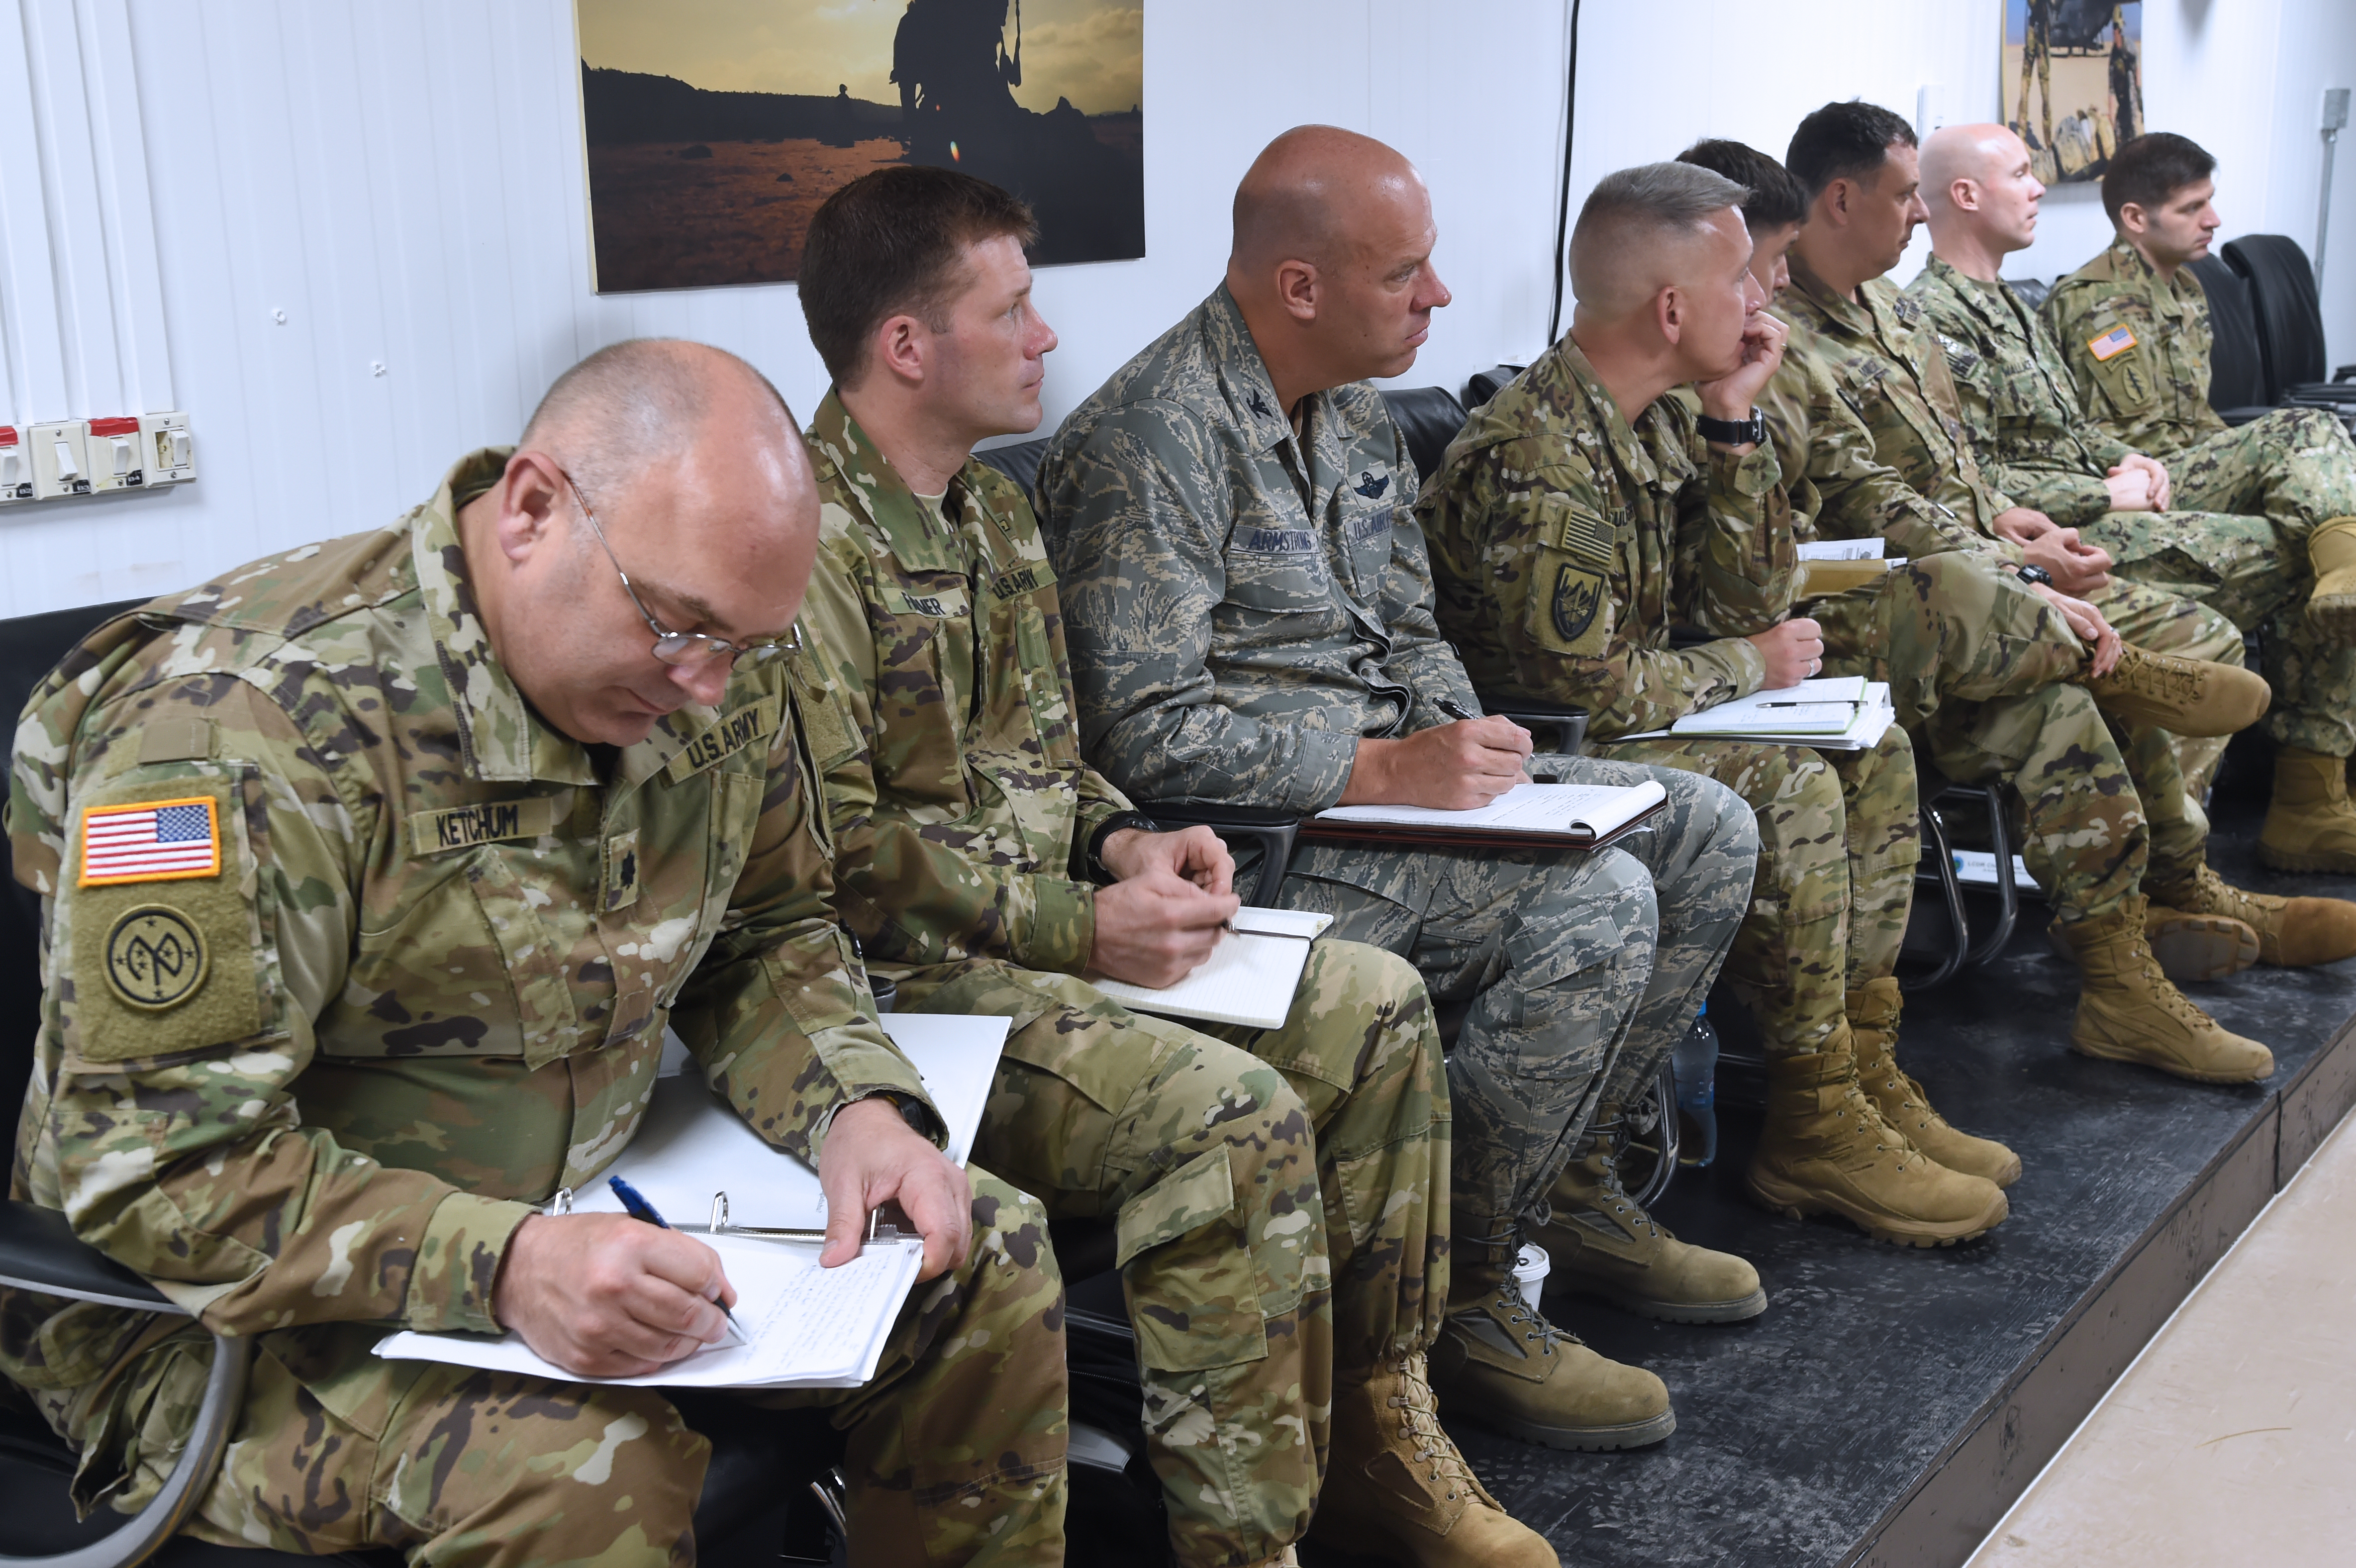 U.S. Defense Attachés and country team personnel from eight East Africa nations joined military leaders from U.S. Africa Command and Combined Joint Task Force-Horn of Africa at Camp Lemonnier, Djibouti Jan. 24, for the 2017 East Africa Security Synchronization Conference. The two-day event was hosted by CJTF-HOA under the leadership of AFRICOM Commander Gen. Thomas Waldhauser, and provided the opportunity for an open dialogue to discuss the security environments of each country. (U.S. Air National Guard photo by Master Sgt. Paul Gorman)